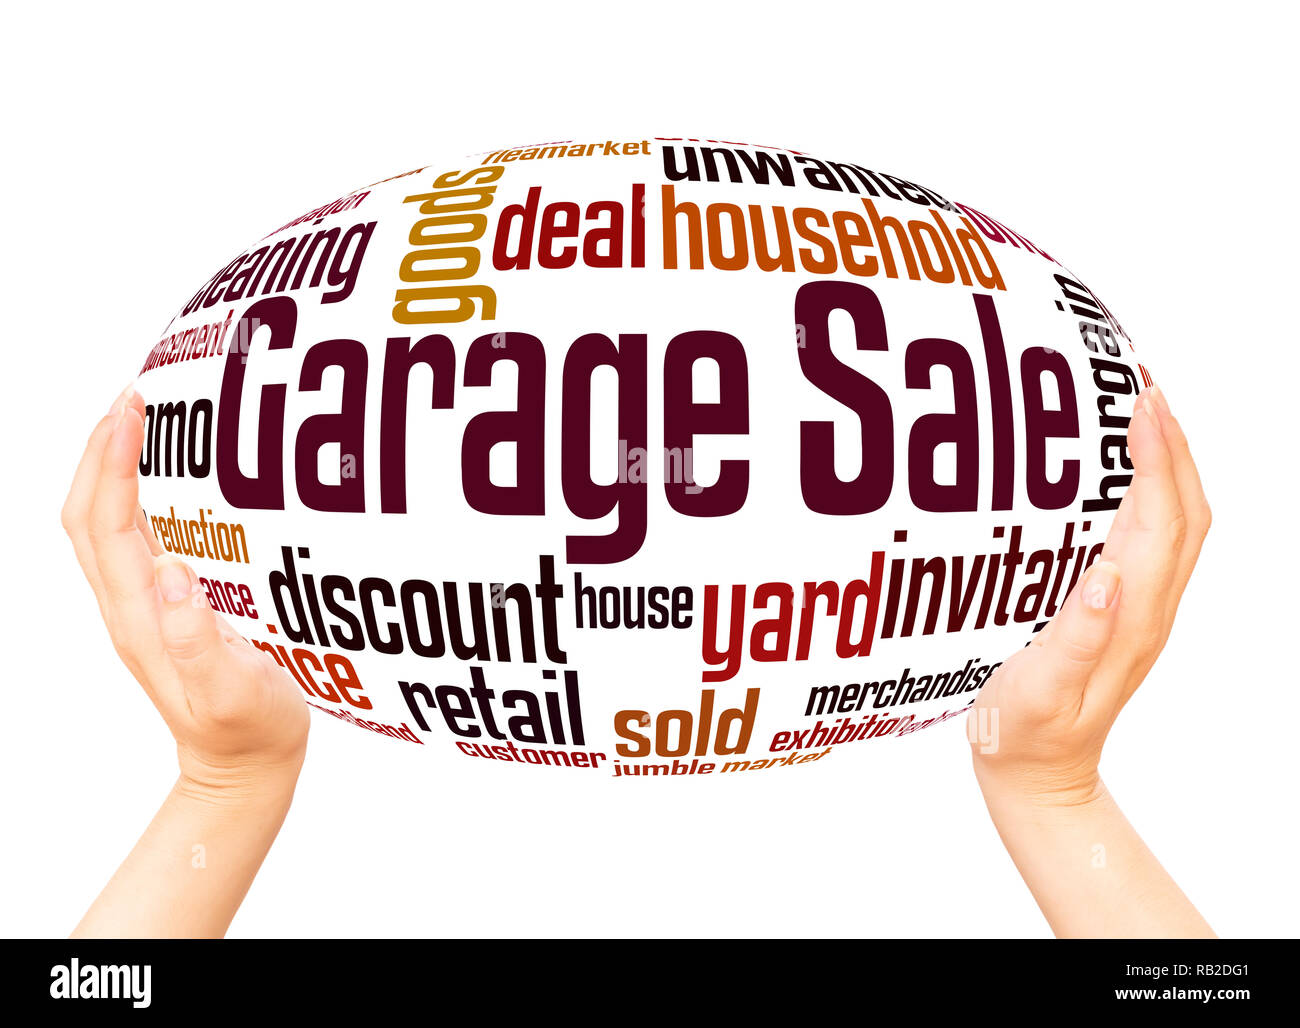 Garage Sale word cloud hand sphere concept on white background. - Stock Image